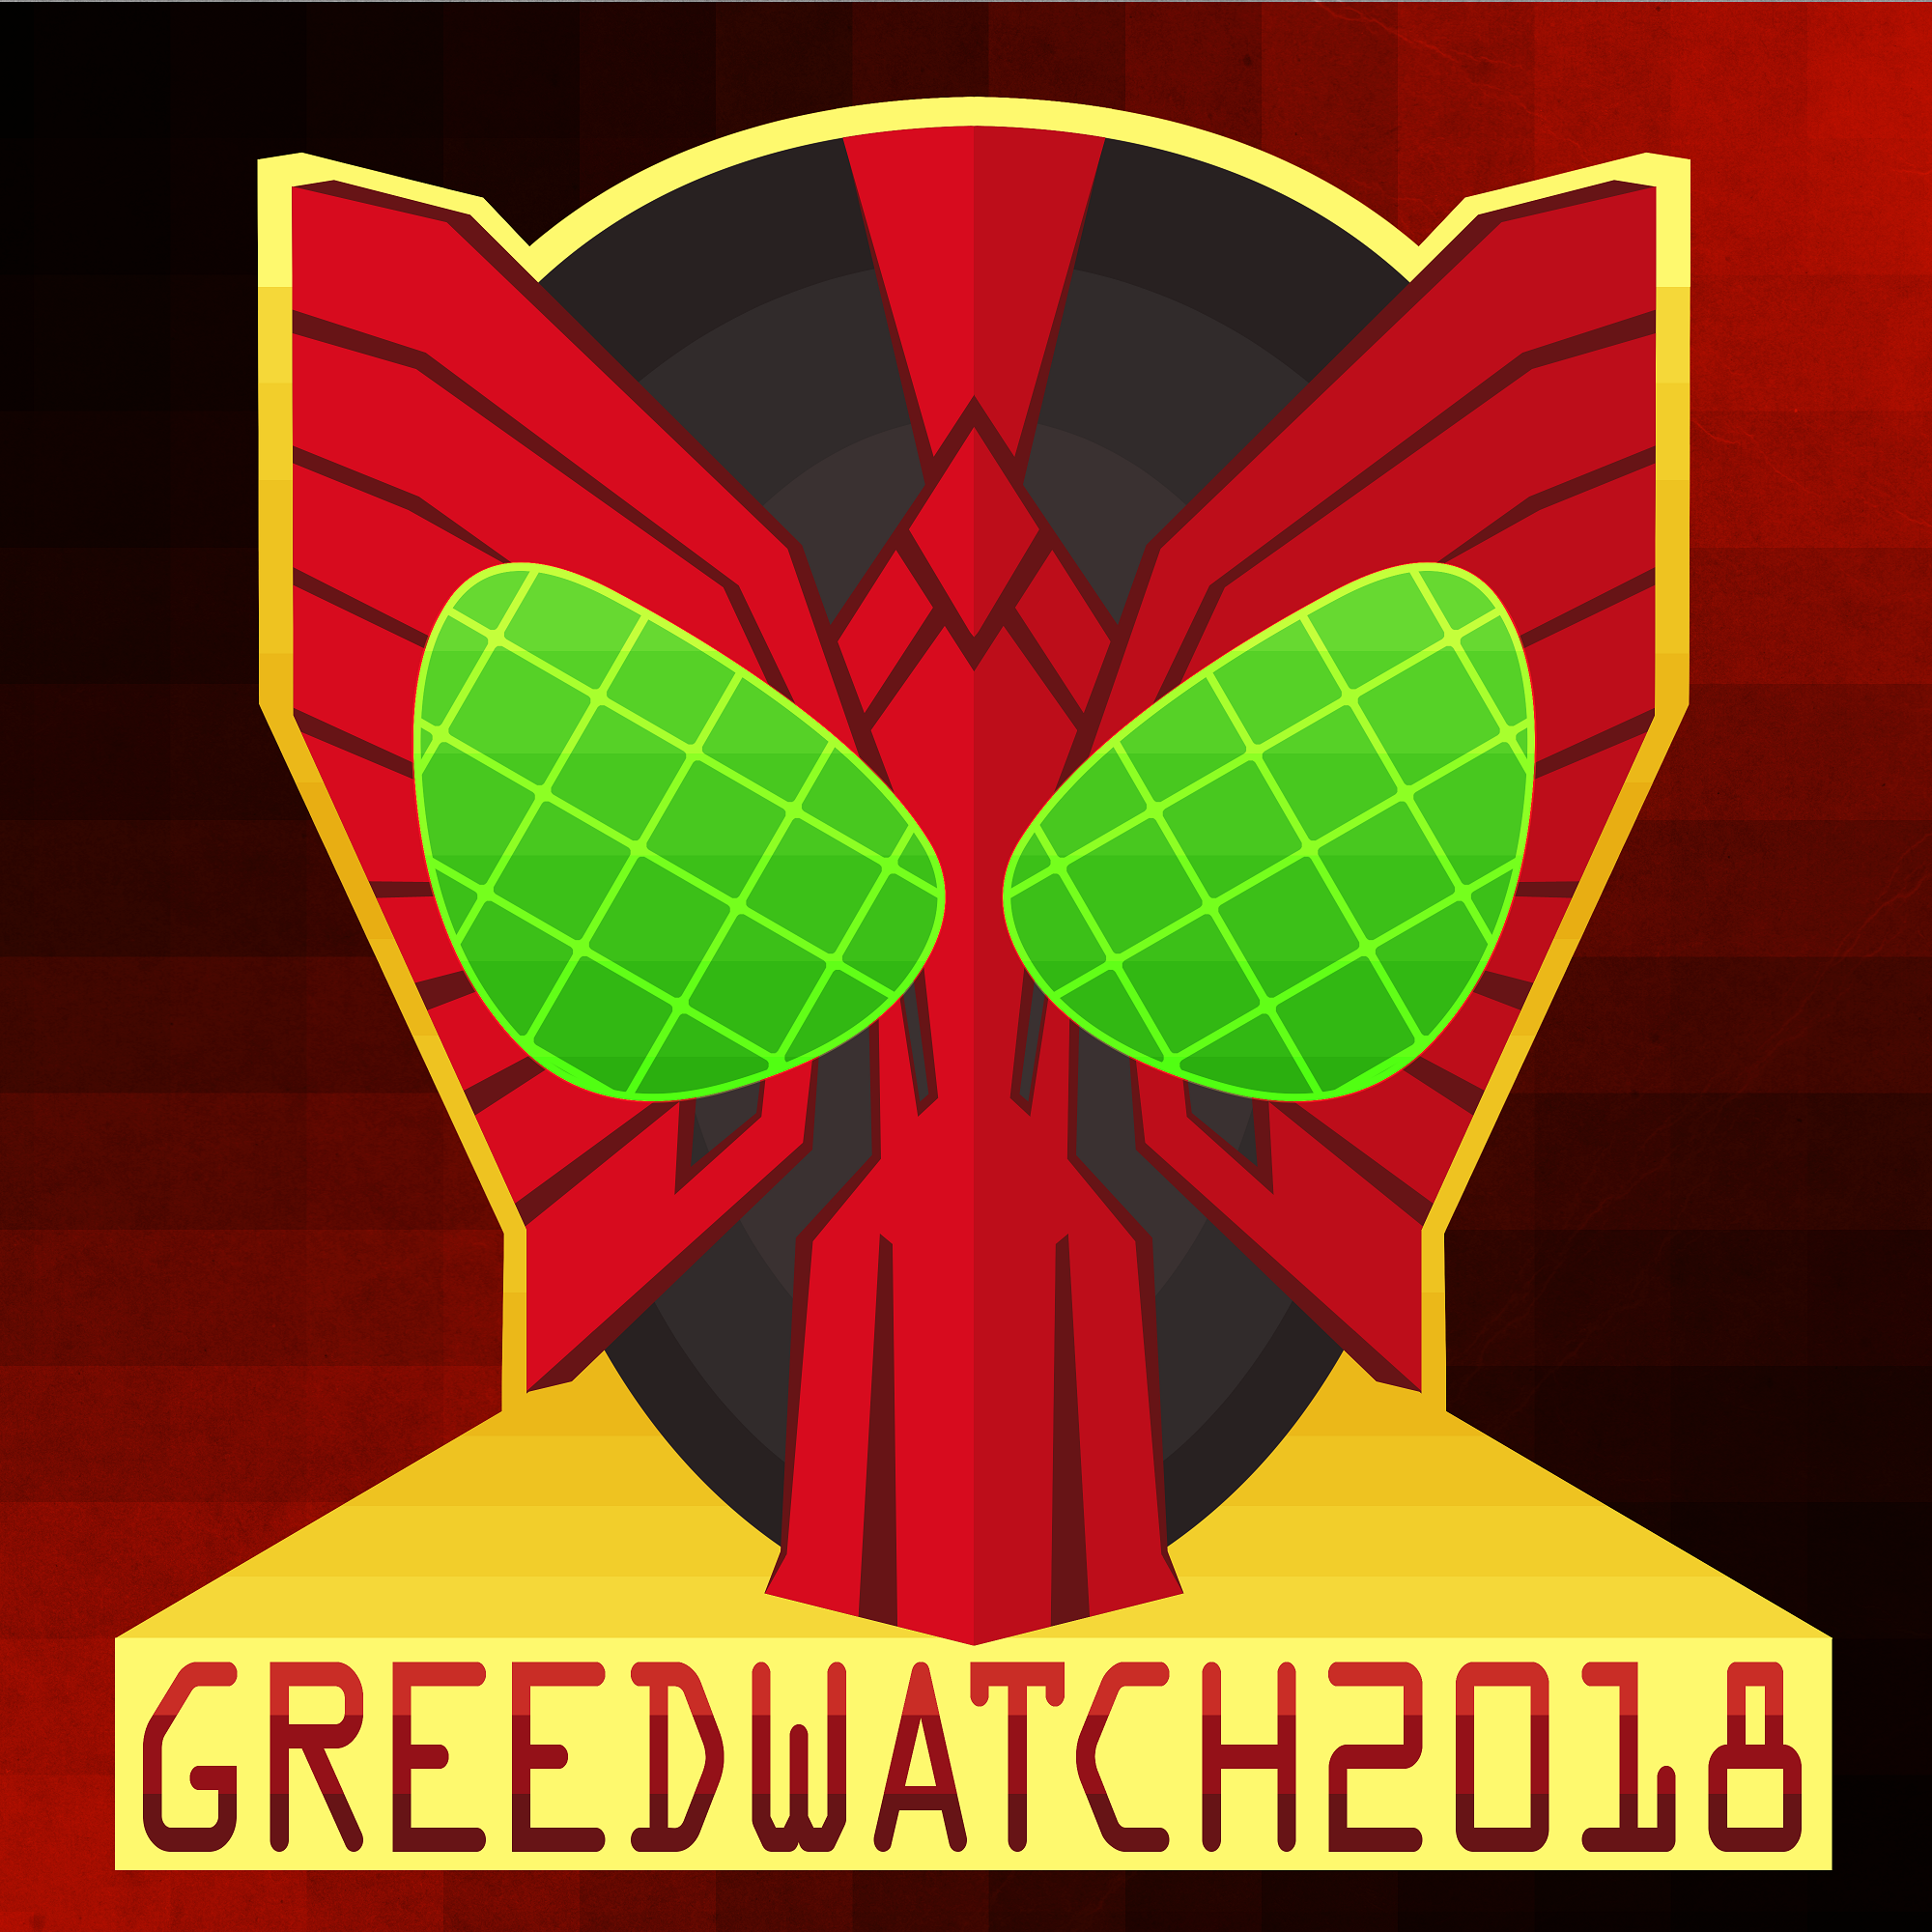 GREEDWATCH2018